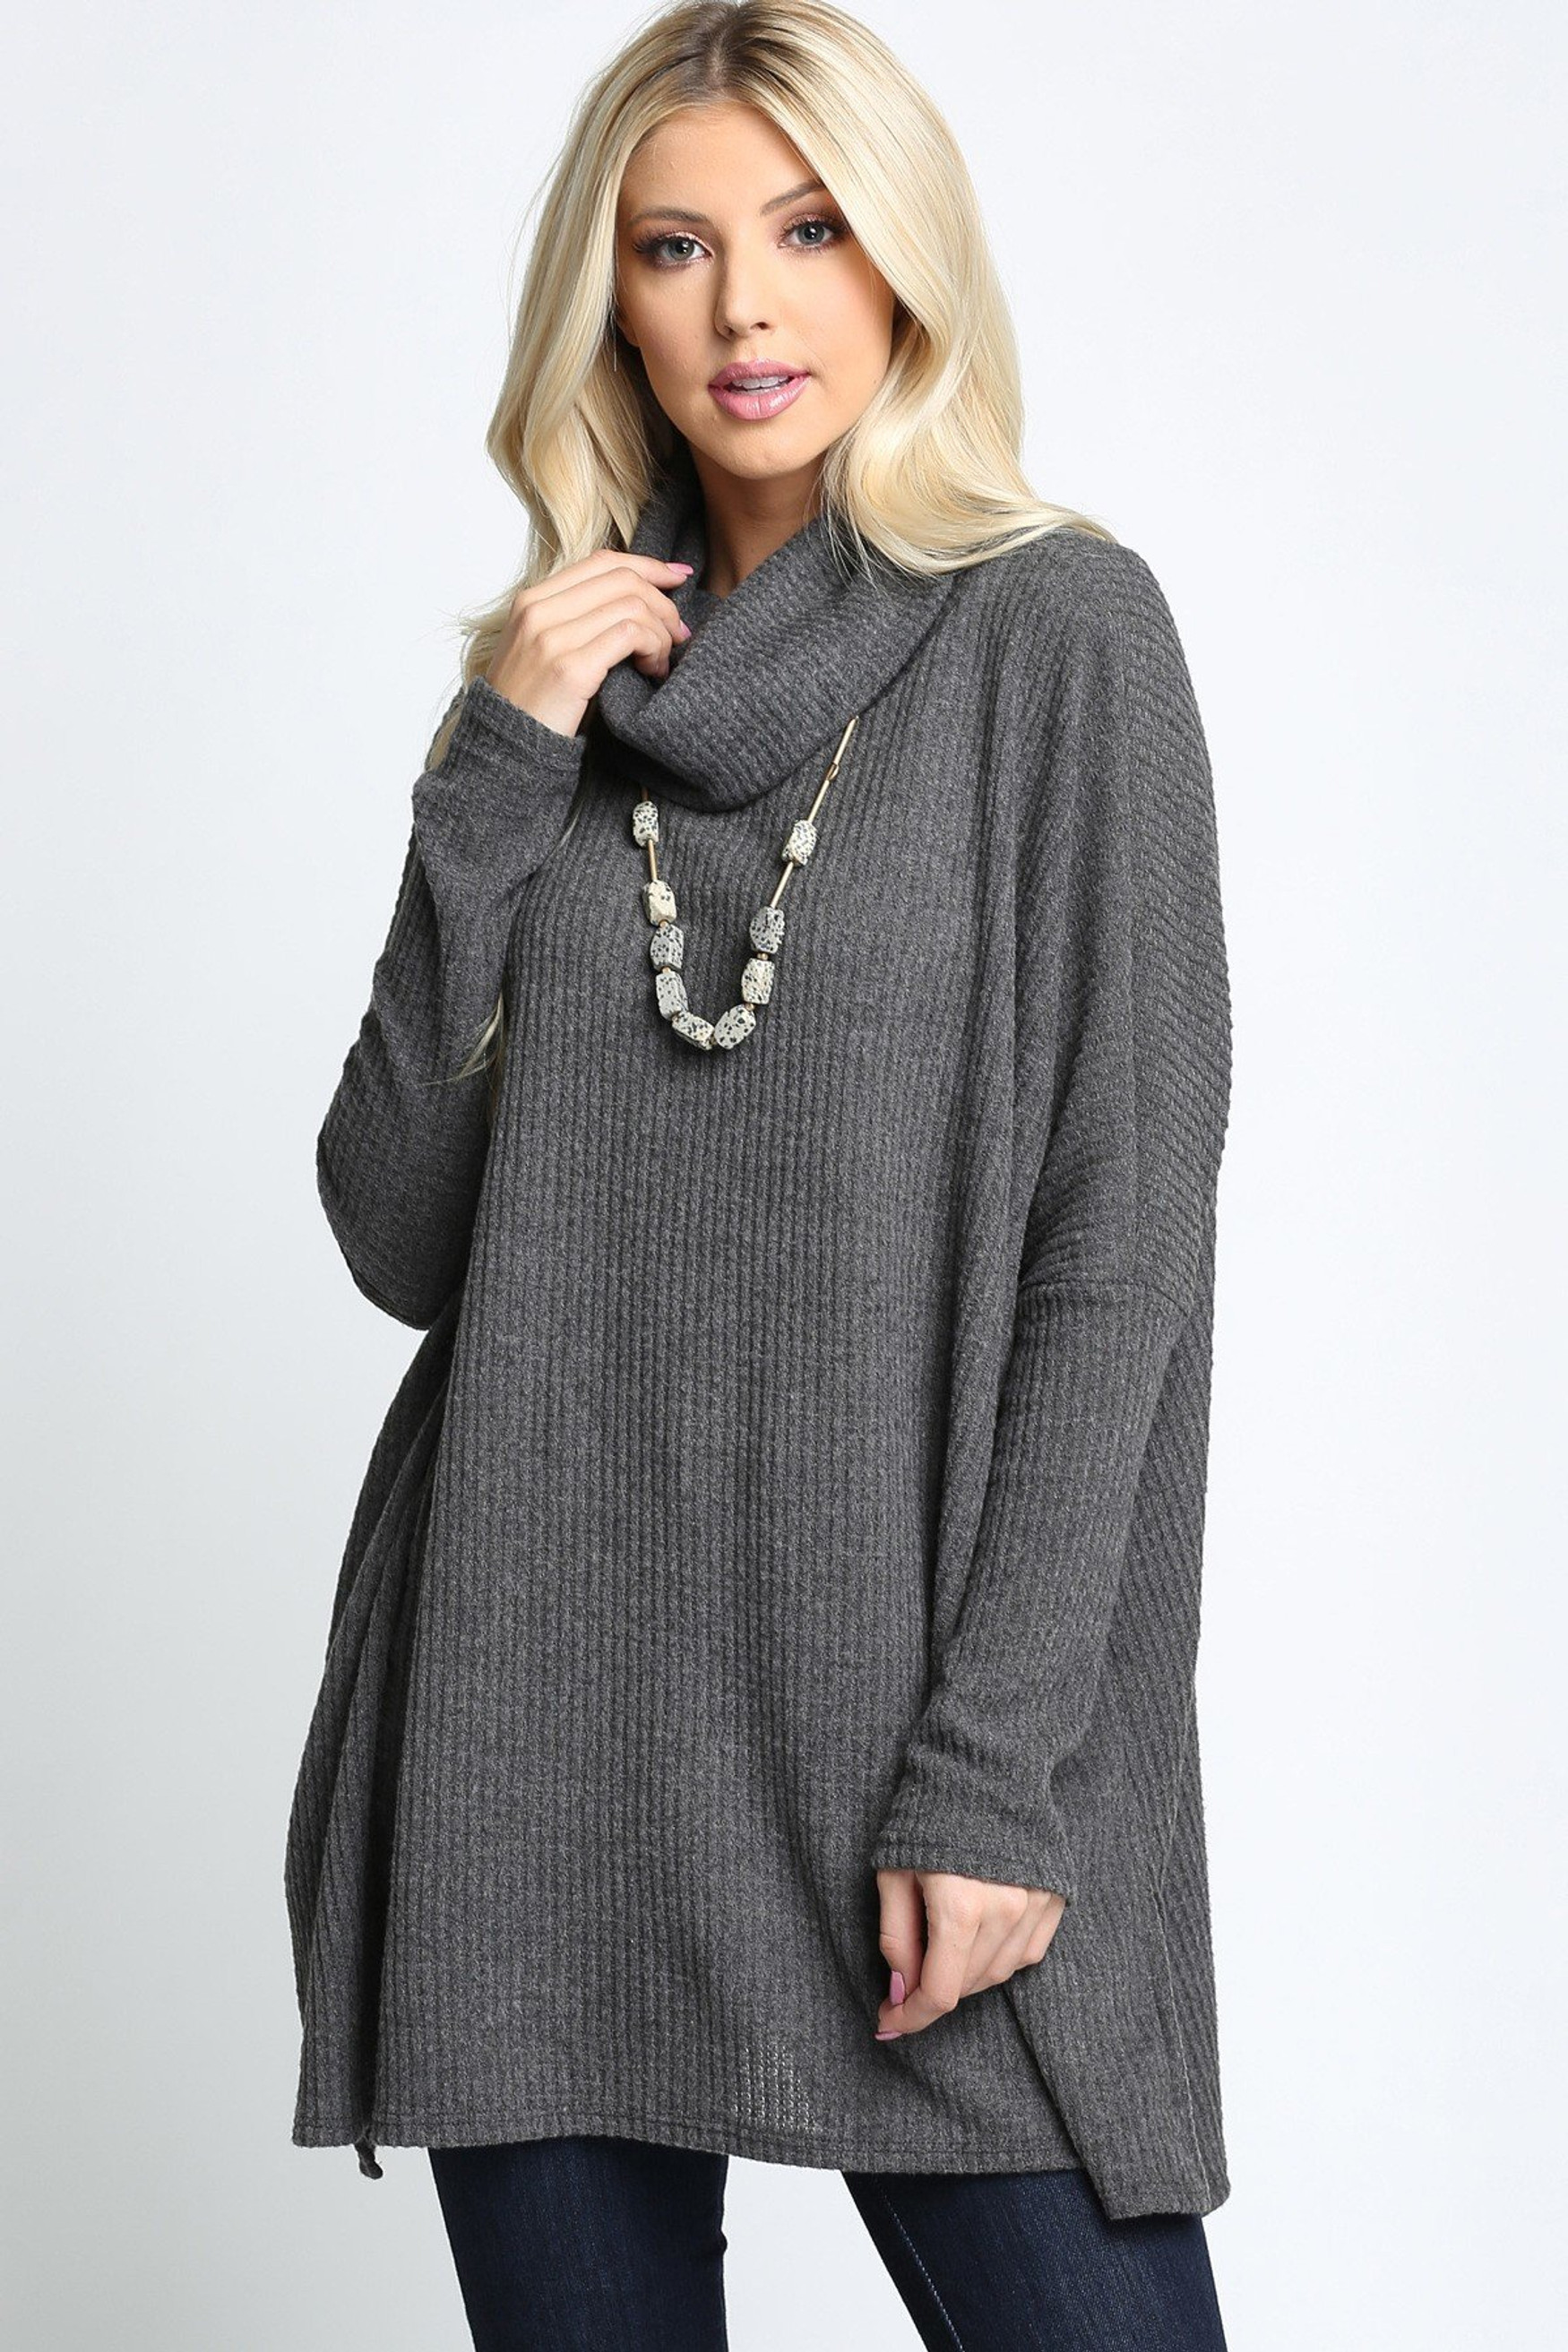 Charcoal Waffle Knit Cowl Neck Dolman Sleeve Plus Size Top